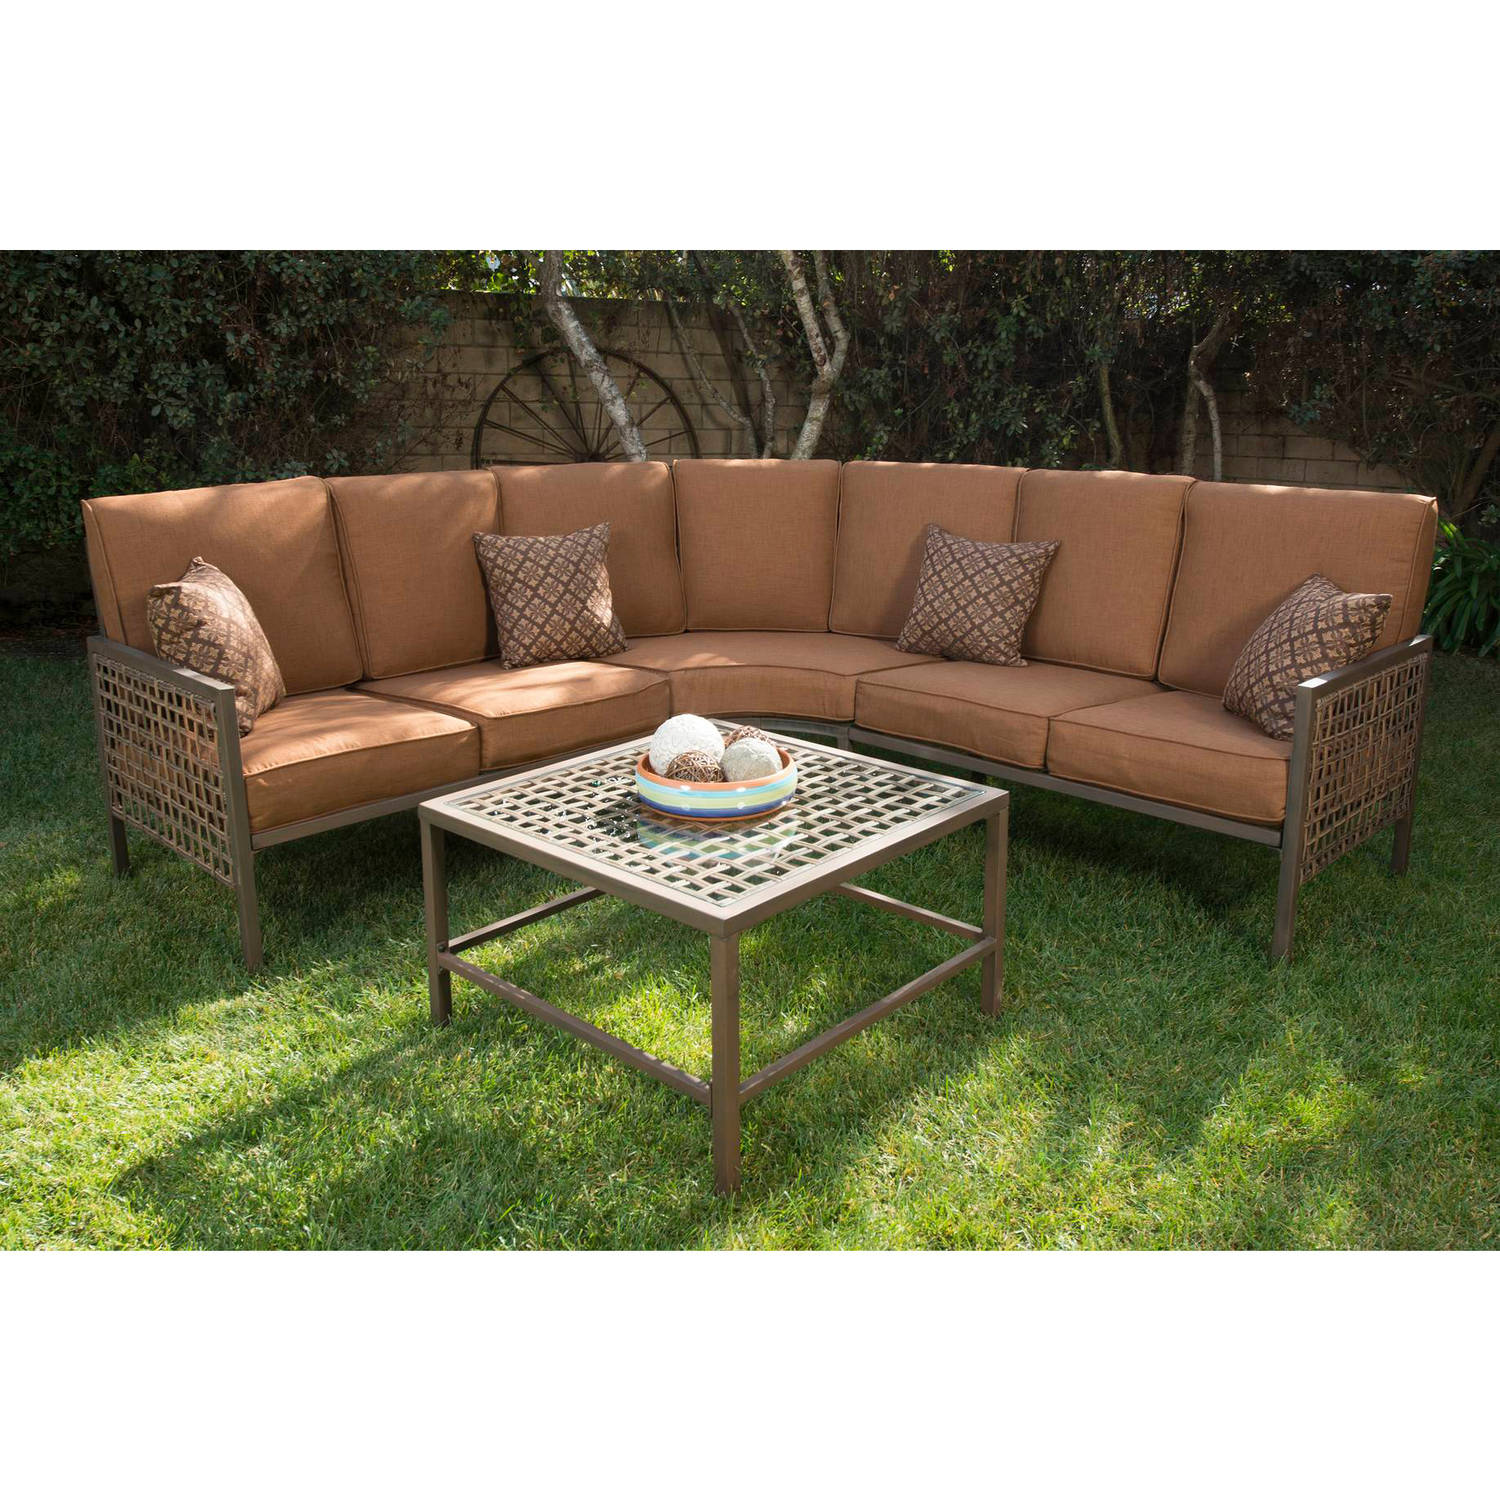 Soho Outdoor Furniture